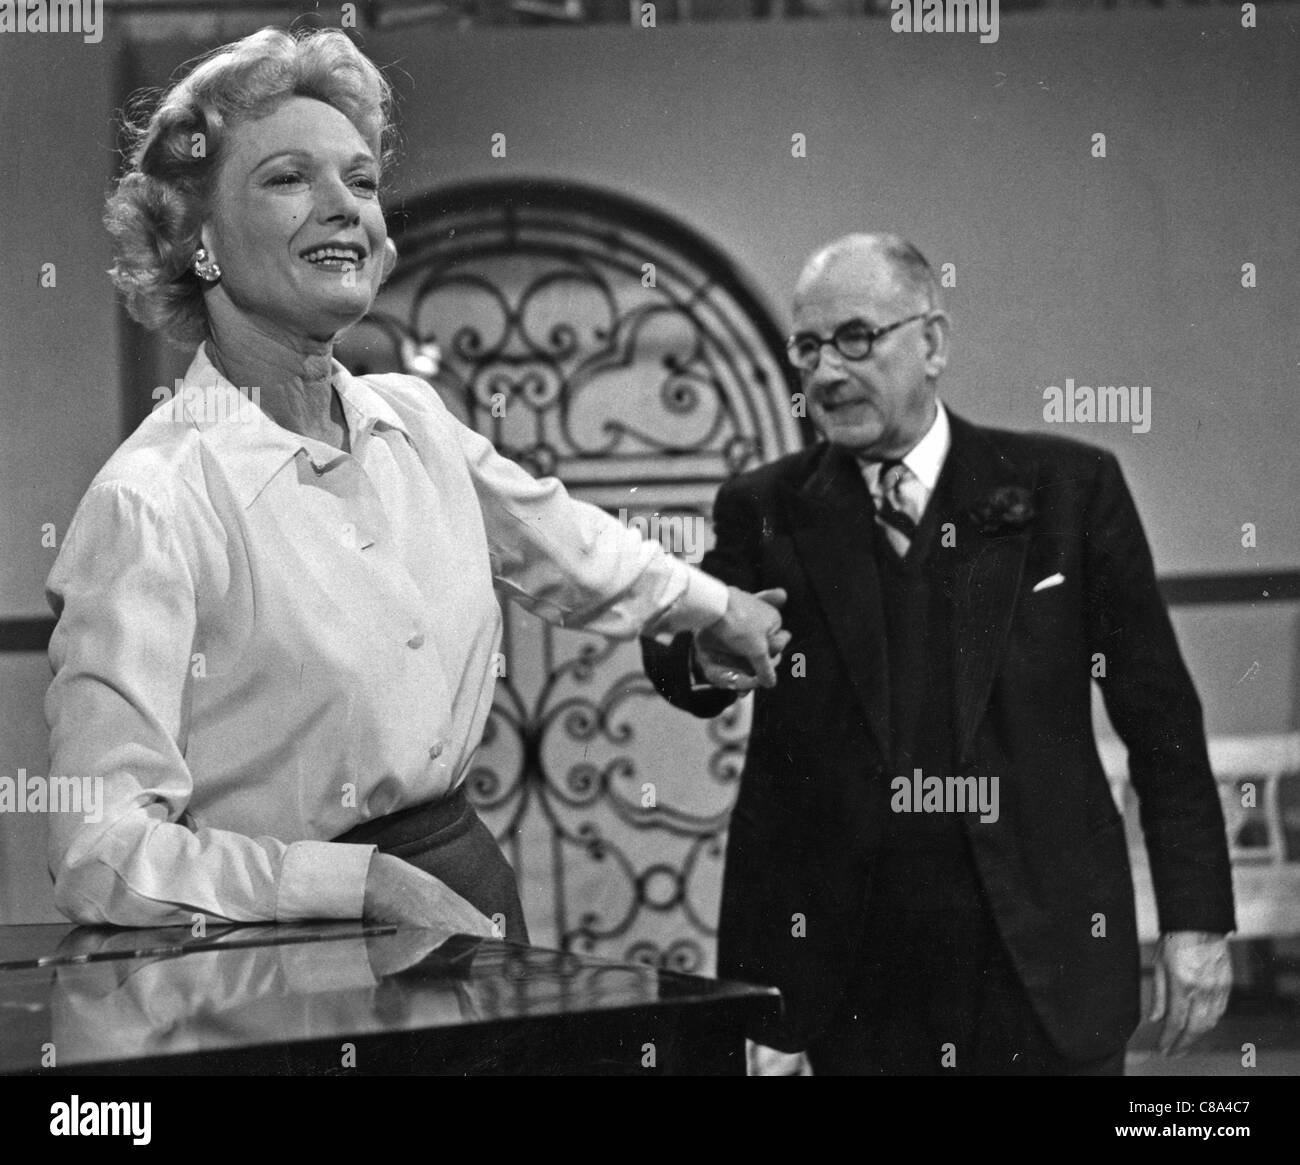 ANNA NEAGLE (1904-1986) English stage and film actress with husband Herbert Wilcox about 1954 - Stock Image